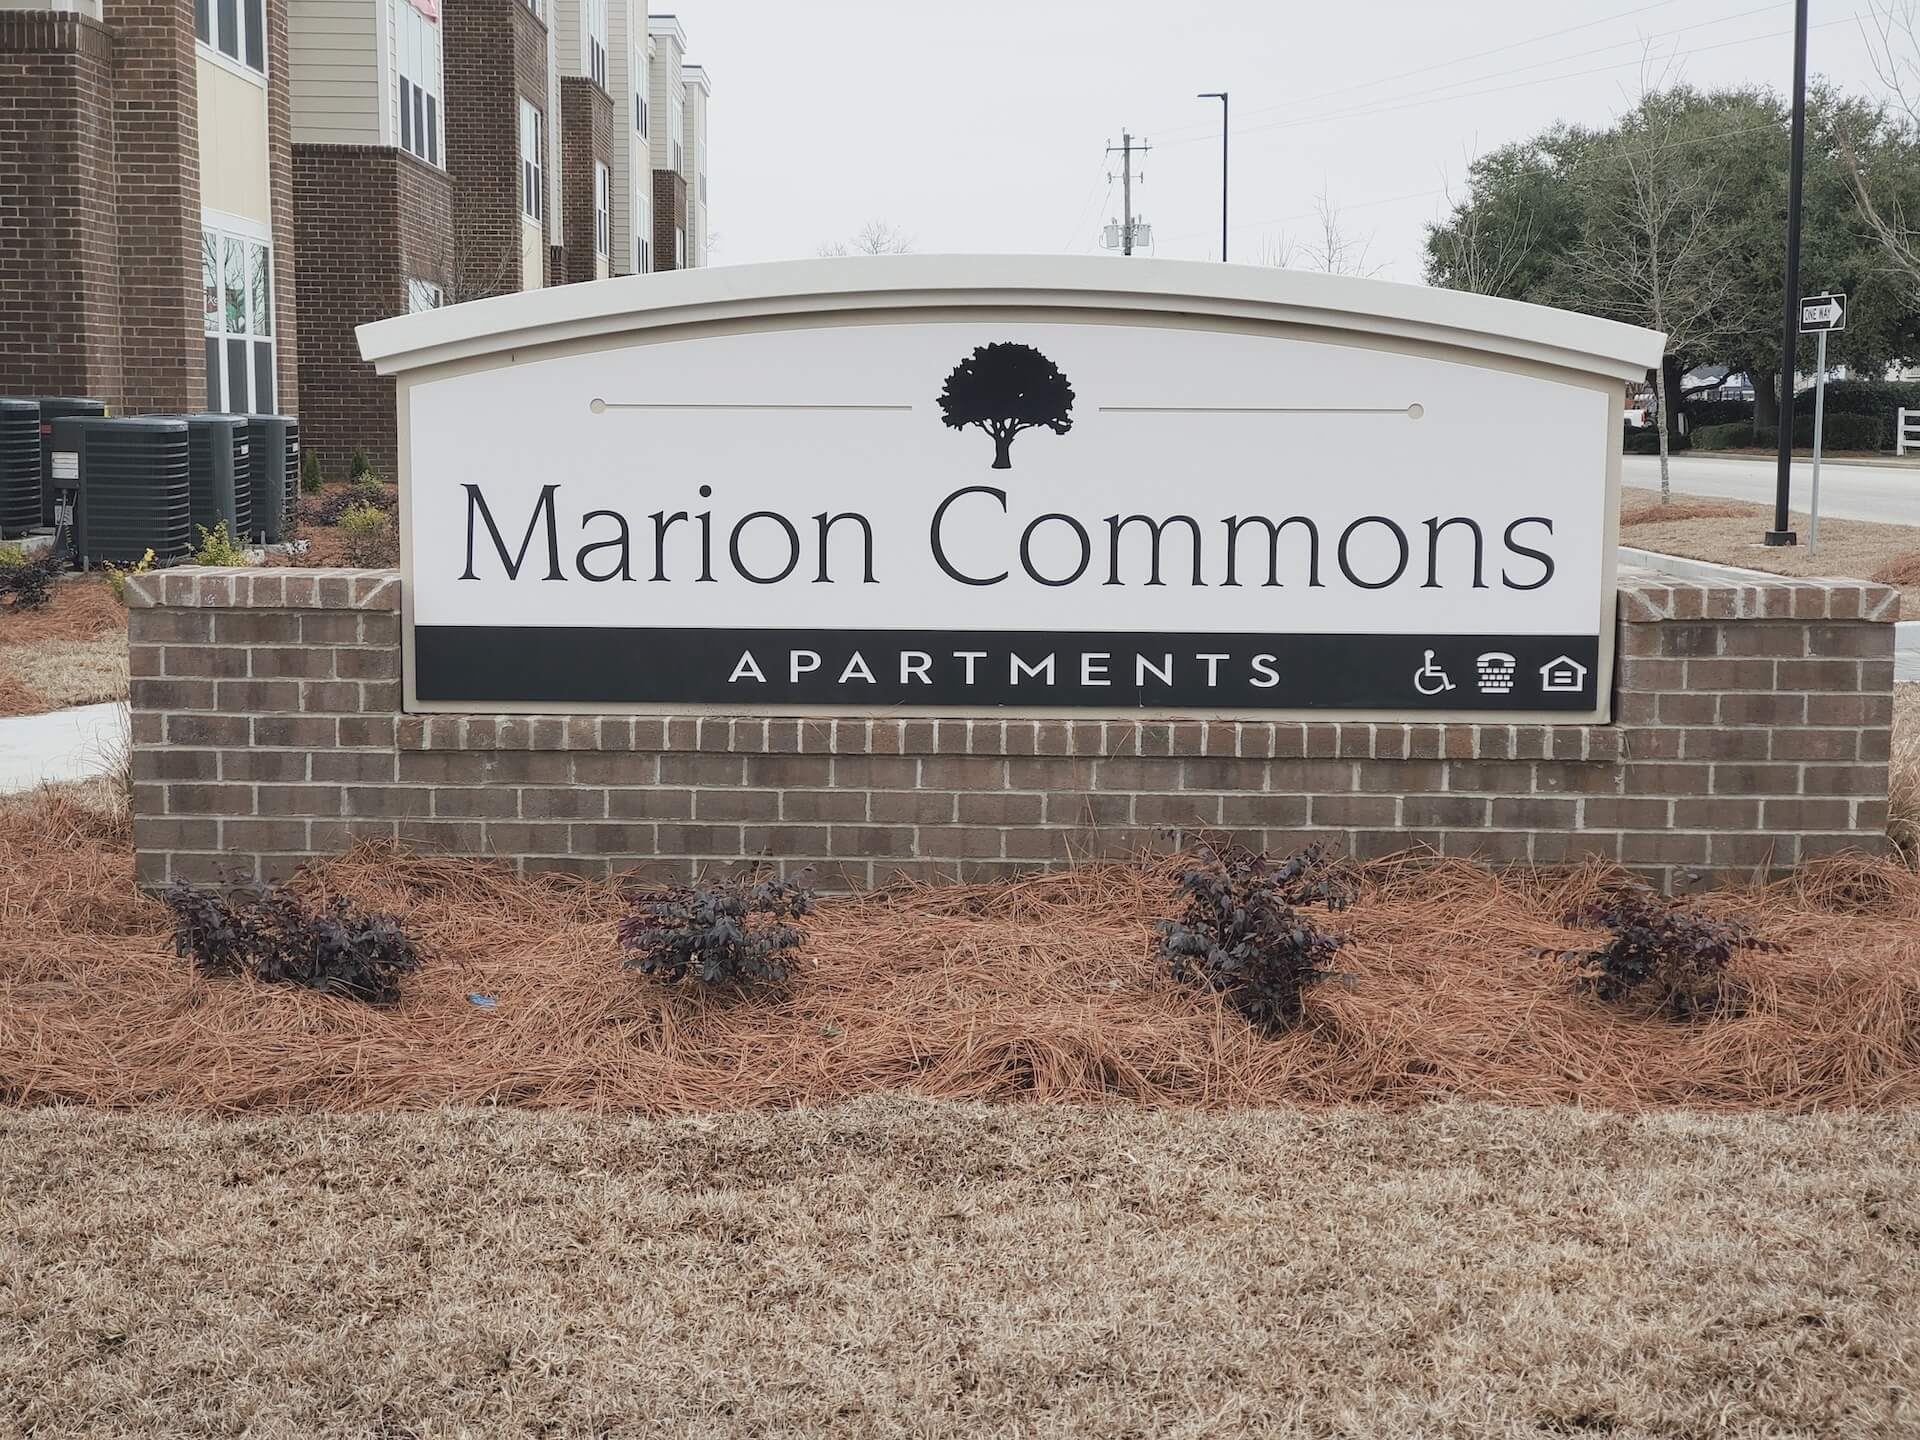 Marion Commons